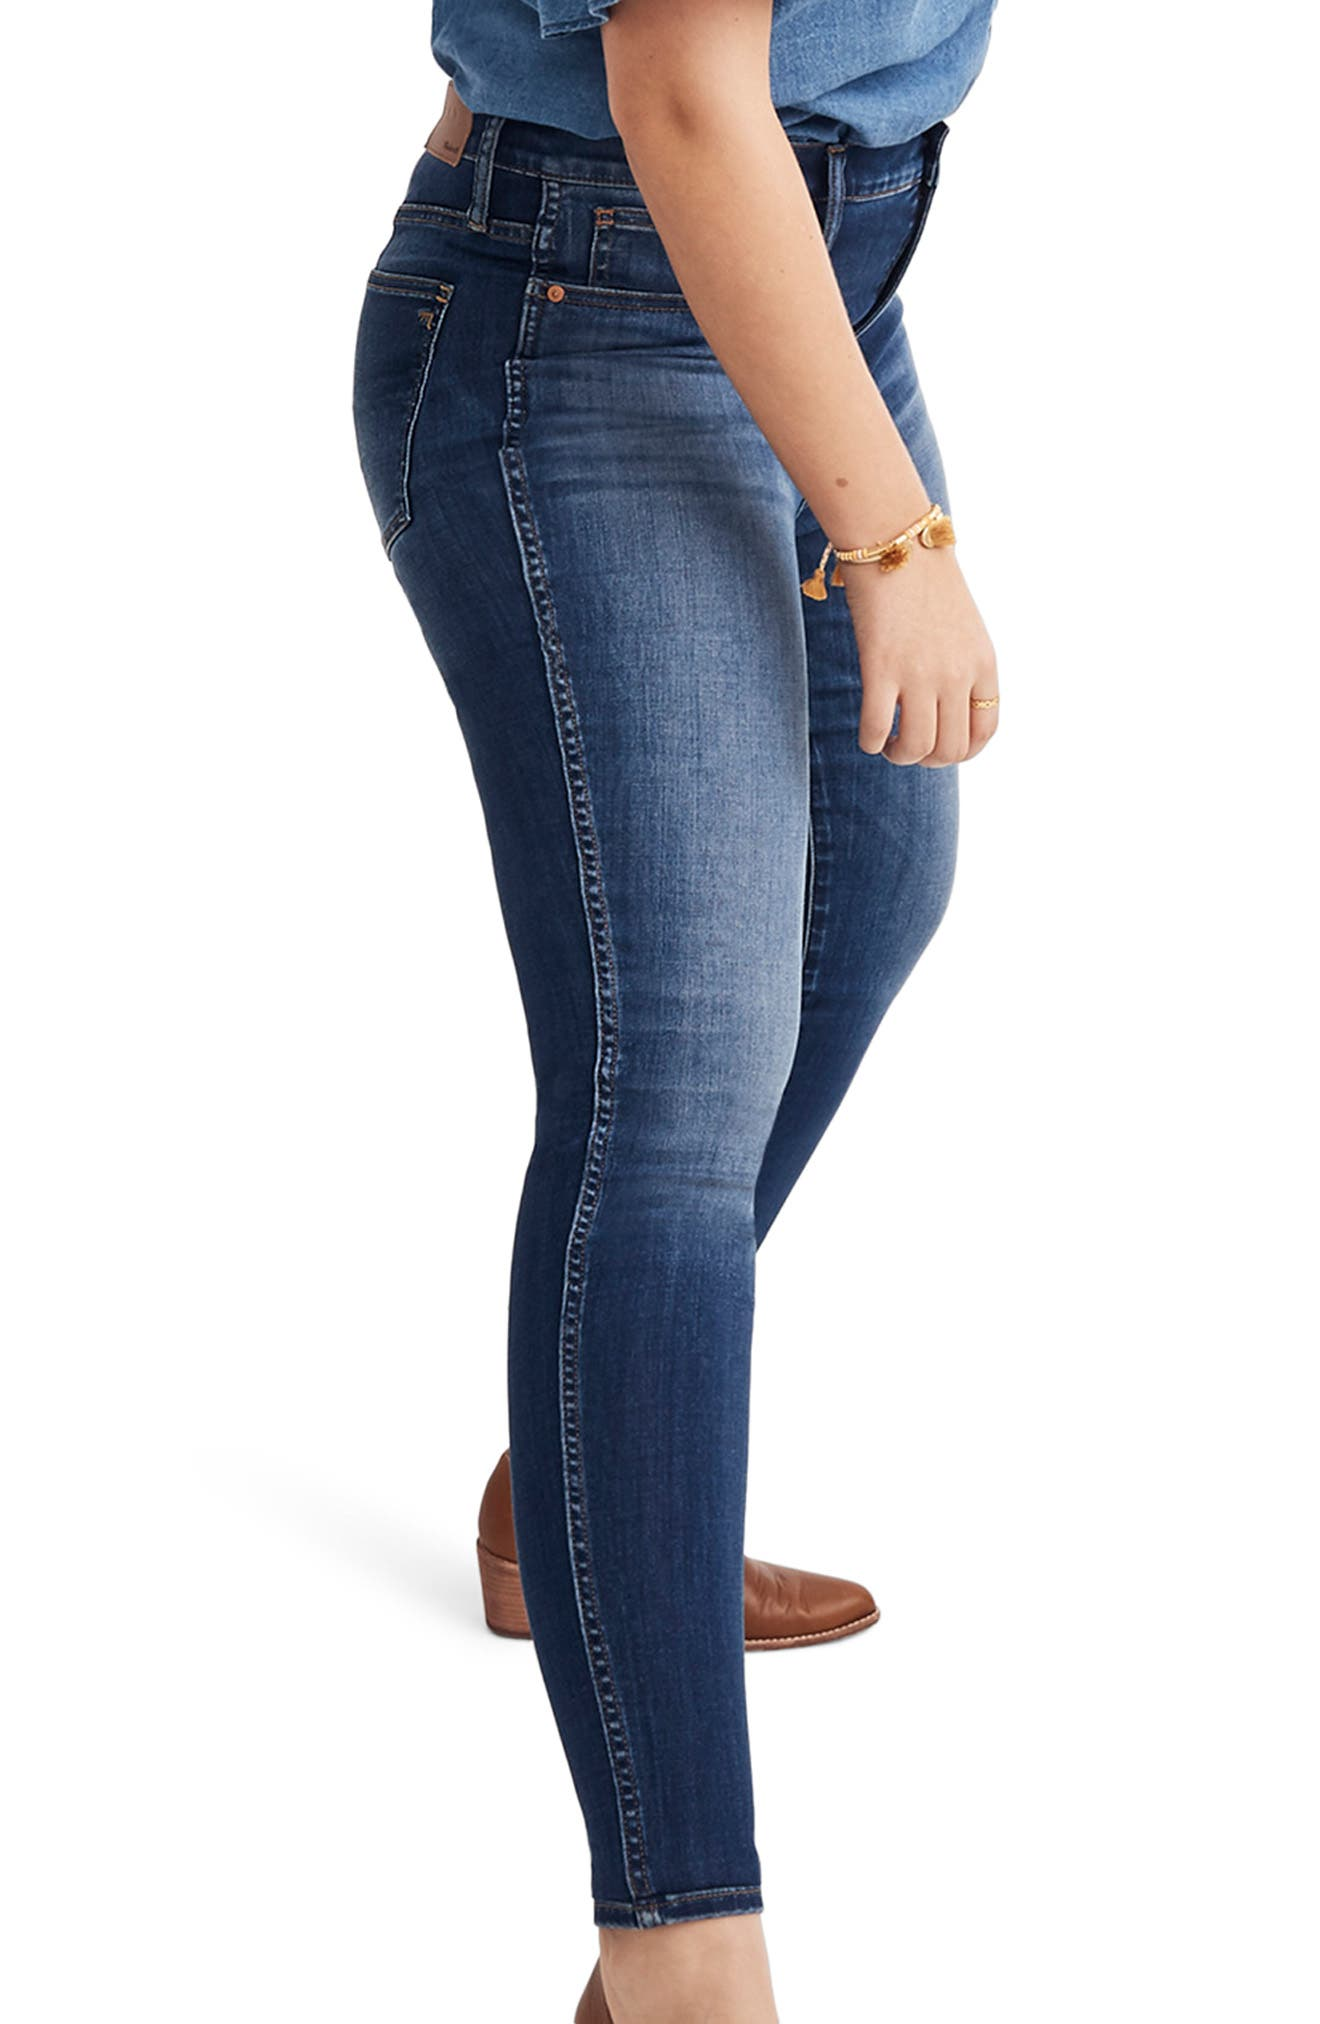 10-Inch High Rise Skinny Jeans,                             Alternate thumbnail 9, color,                             DANNY